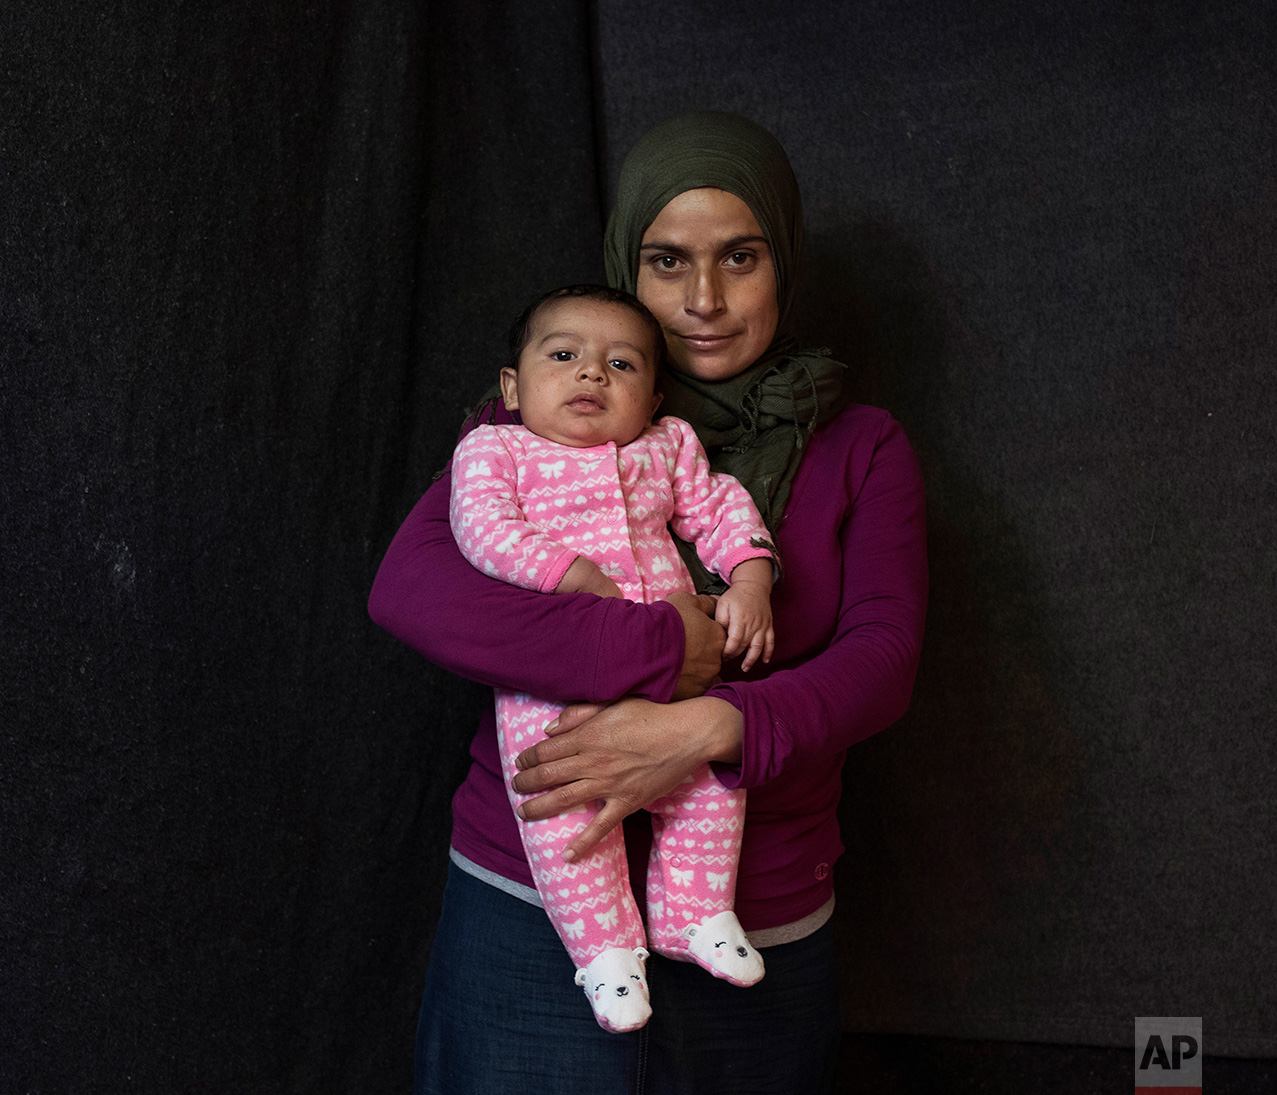 In this Wednesday Oct. 19, 2016, 25-year-old Arna Al Mousa, a Syrian mother from the city of Idlib, poses with her baby boy Yousef Al Mousa in a tent made of blankets given by the UNCHR at the Ritsona refugee camp in Greece. Anna is one of the hundreds of refugee women who gave birth while stranded in Greece. Yousef, the family's fourth child, was born on Wednesday, Aug. 17, 2016 in the hospital of the nearby town of Chalkida. (AP Photo/Petros Giannakouris)